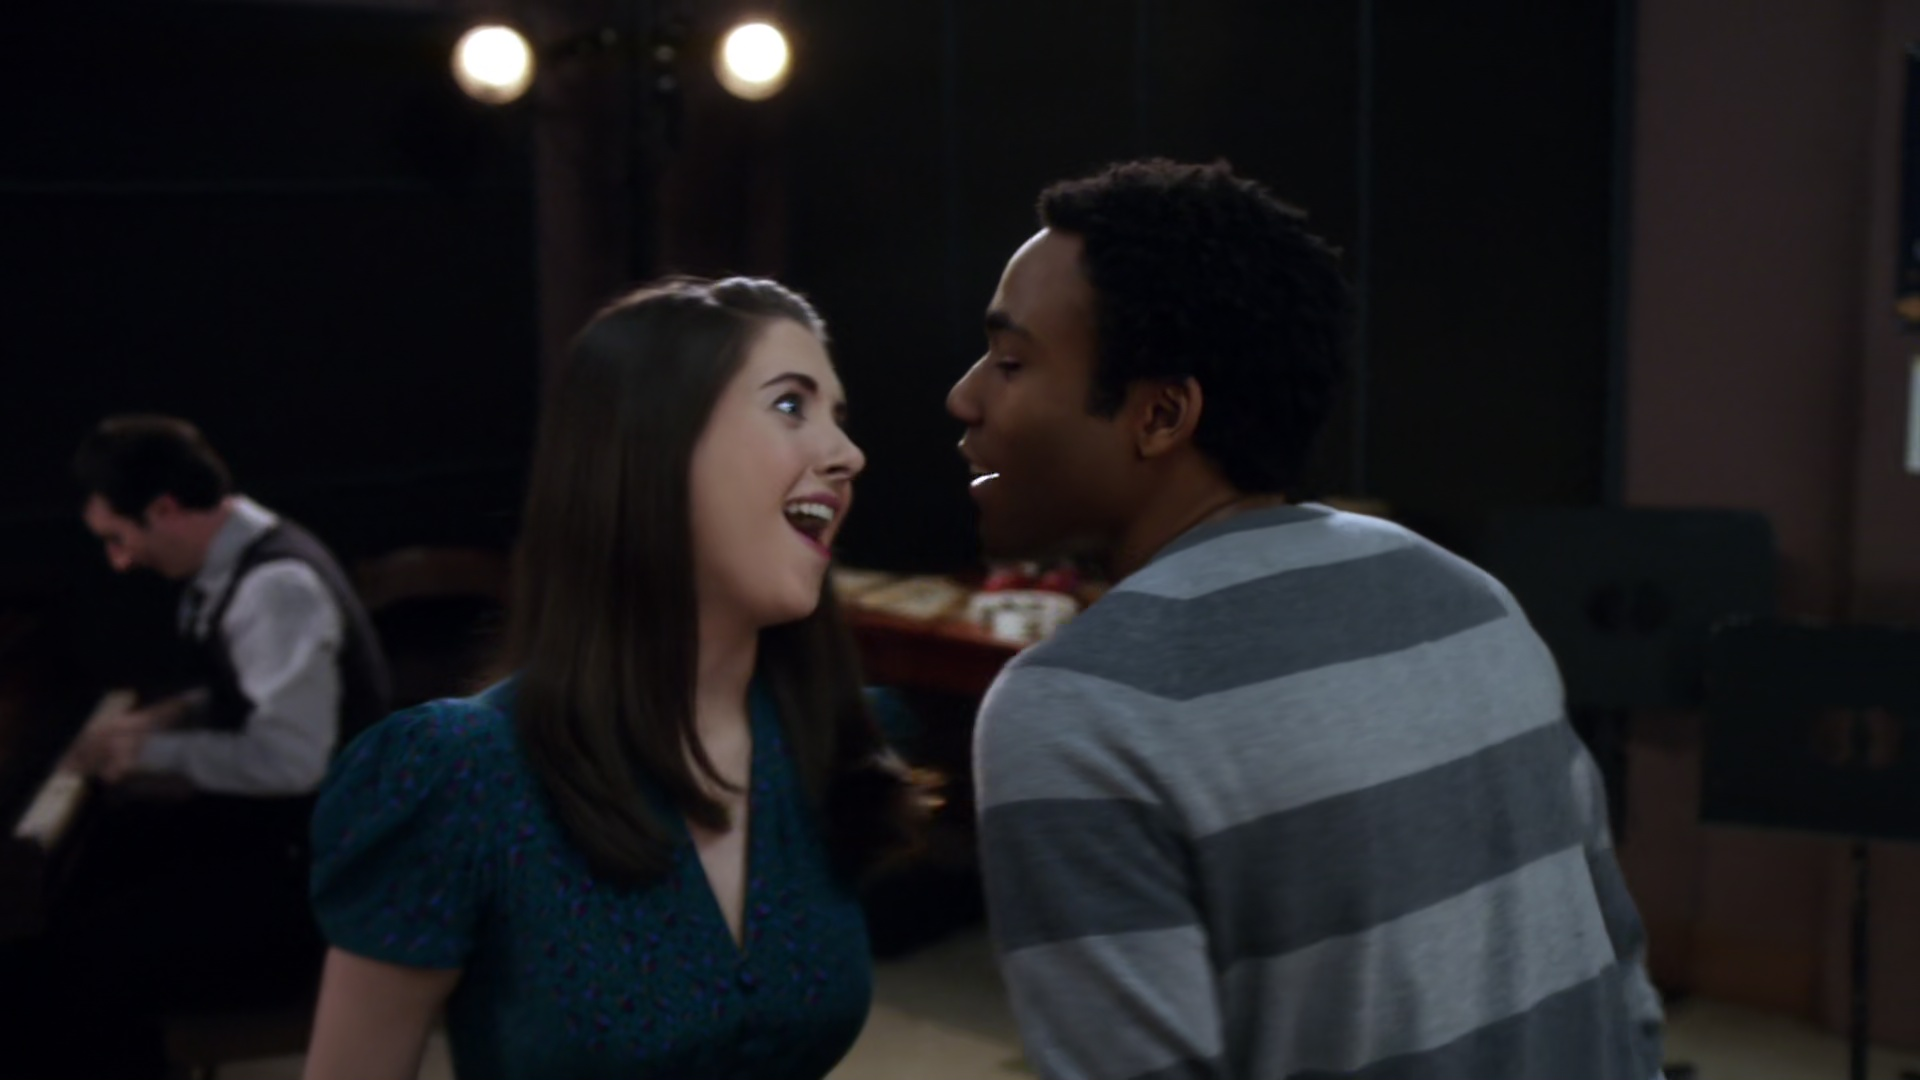 community troy britta dating Britta perry (born october 19, 1980) is a character in the nbc/yahoo sitcom community she is played and voiced by gillian jacobs britta is a politically interested and socially empathetic psychology student at greendale community college, and is often used as a scapegoat by the other members.